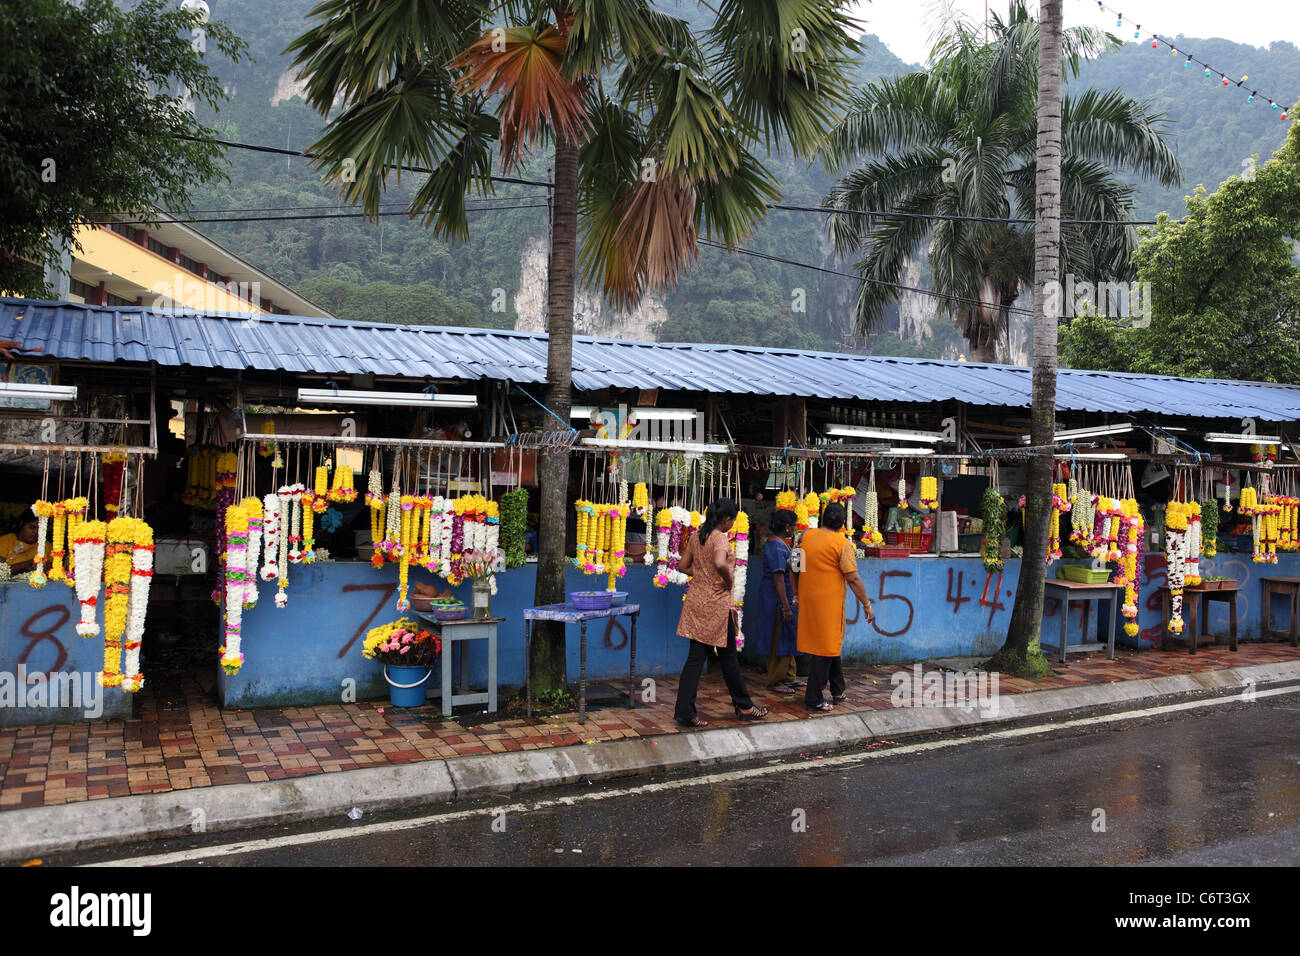 Stalls selling floral offerings to the Hindu gods, outside Batu Caves. - Stock Image